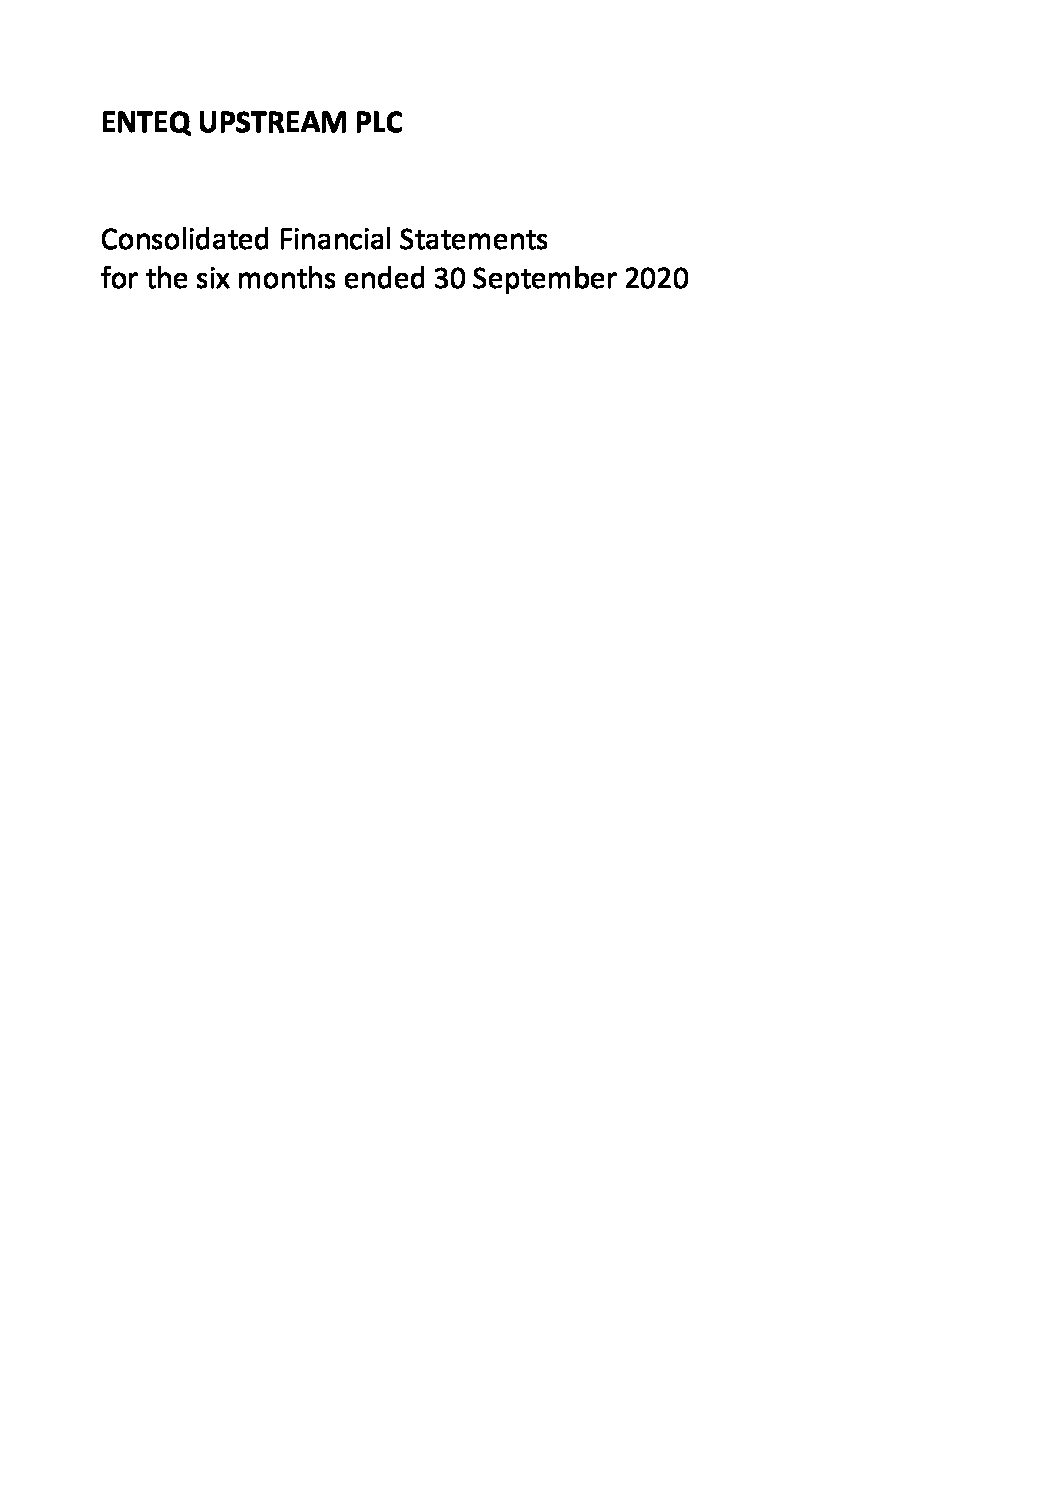 Interim Results to 30 September 2020